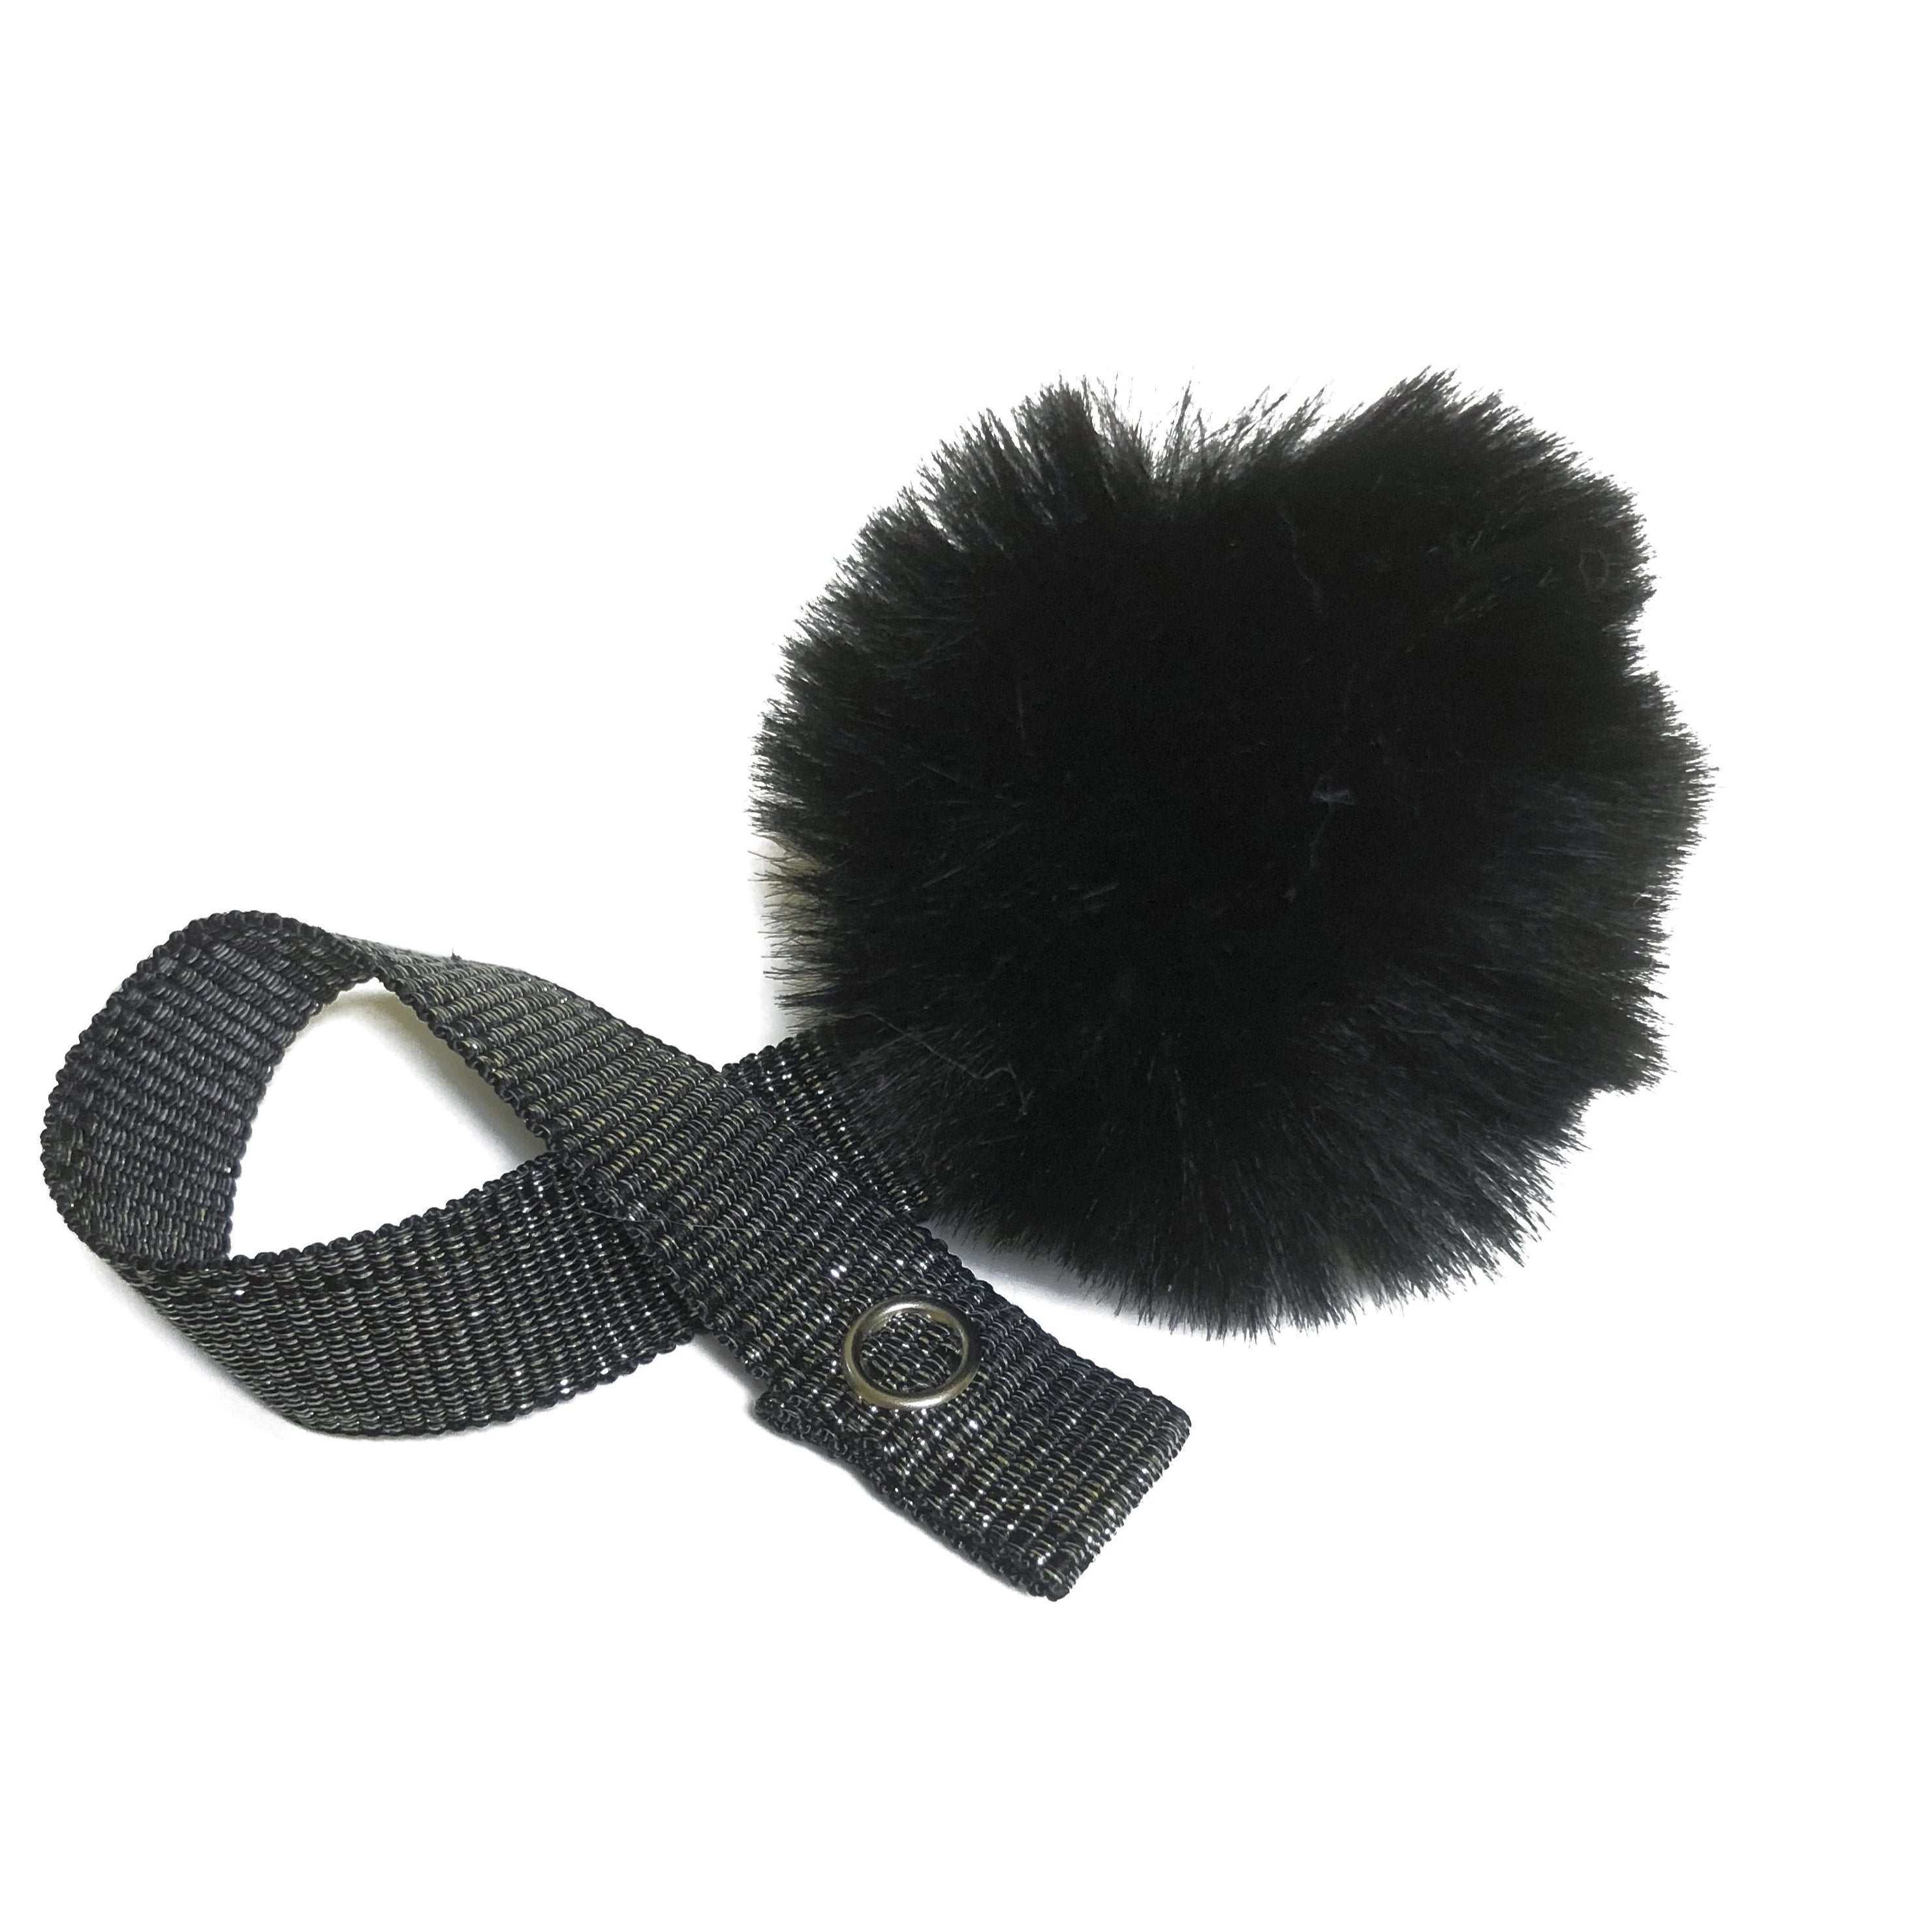 Mini Black Fur Pom Pom